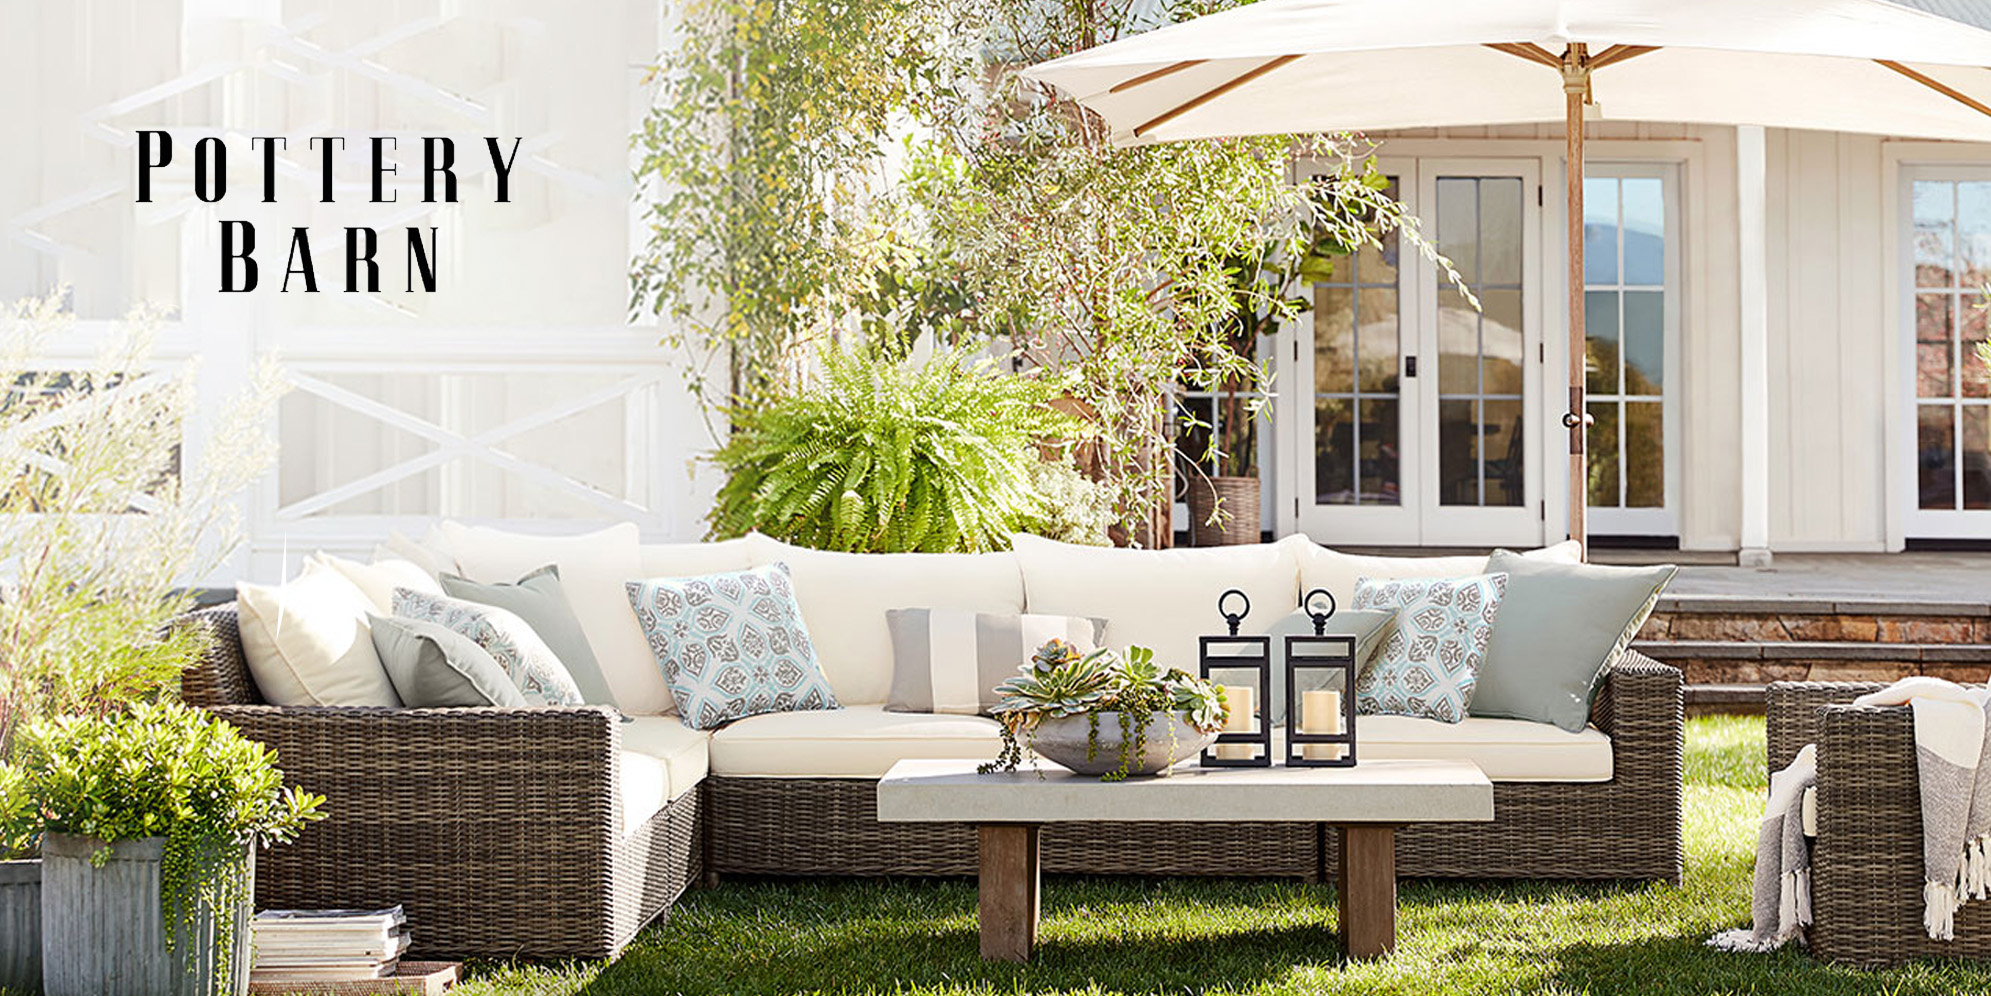 Pottery Barn S Outdoor Event Is Live With Up To 50 Off Furniture Lighting Decor More 9to5toys